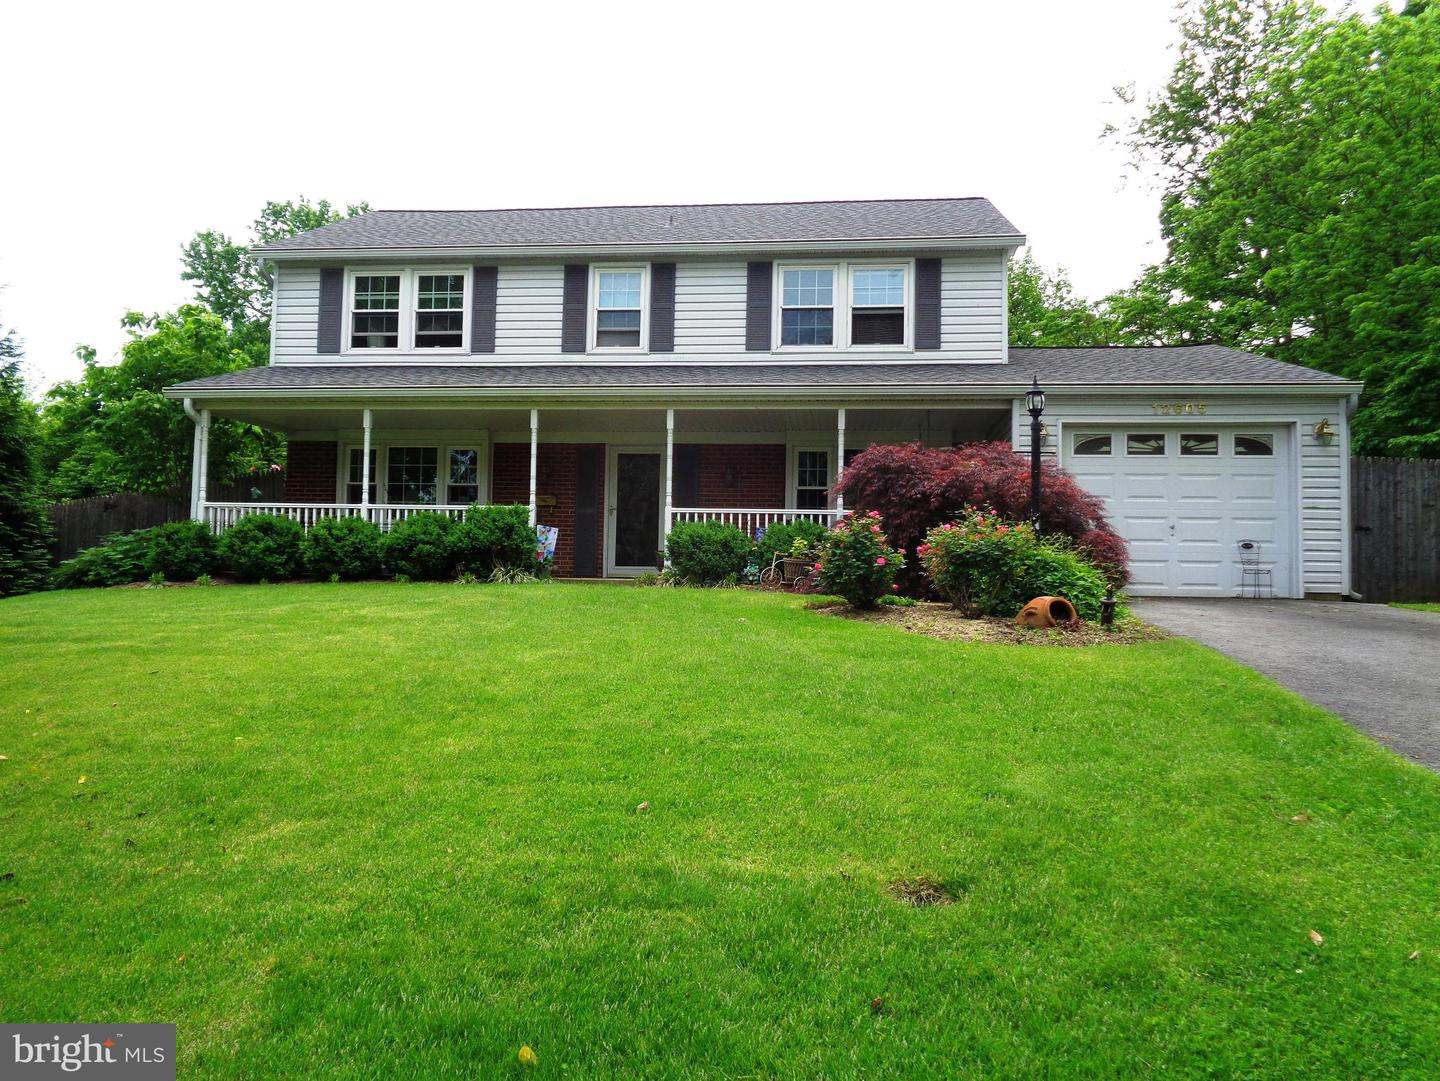 12605 KERNWOOD LANE, BOWIE, Maryland